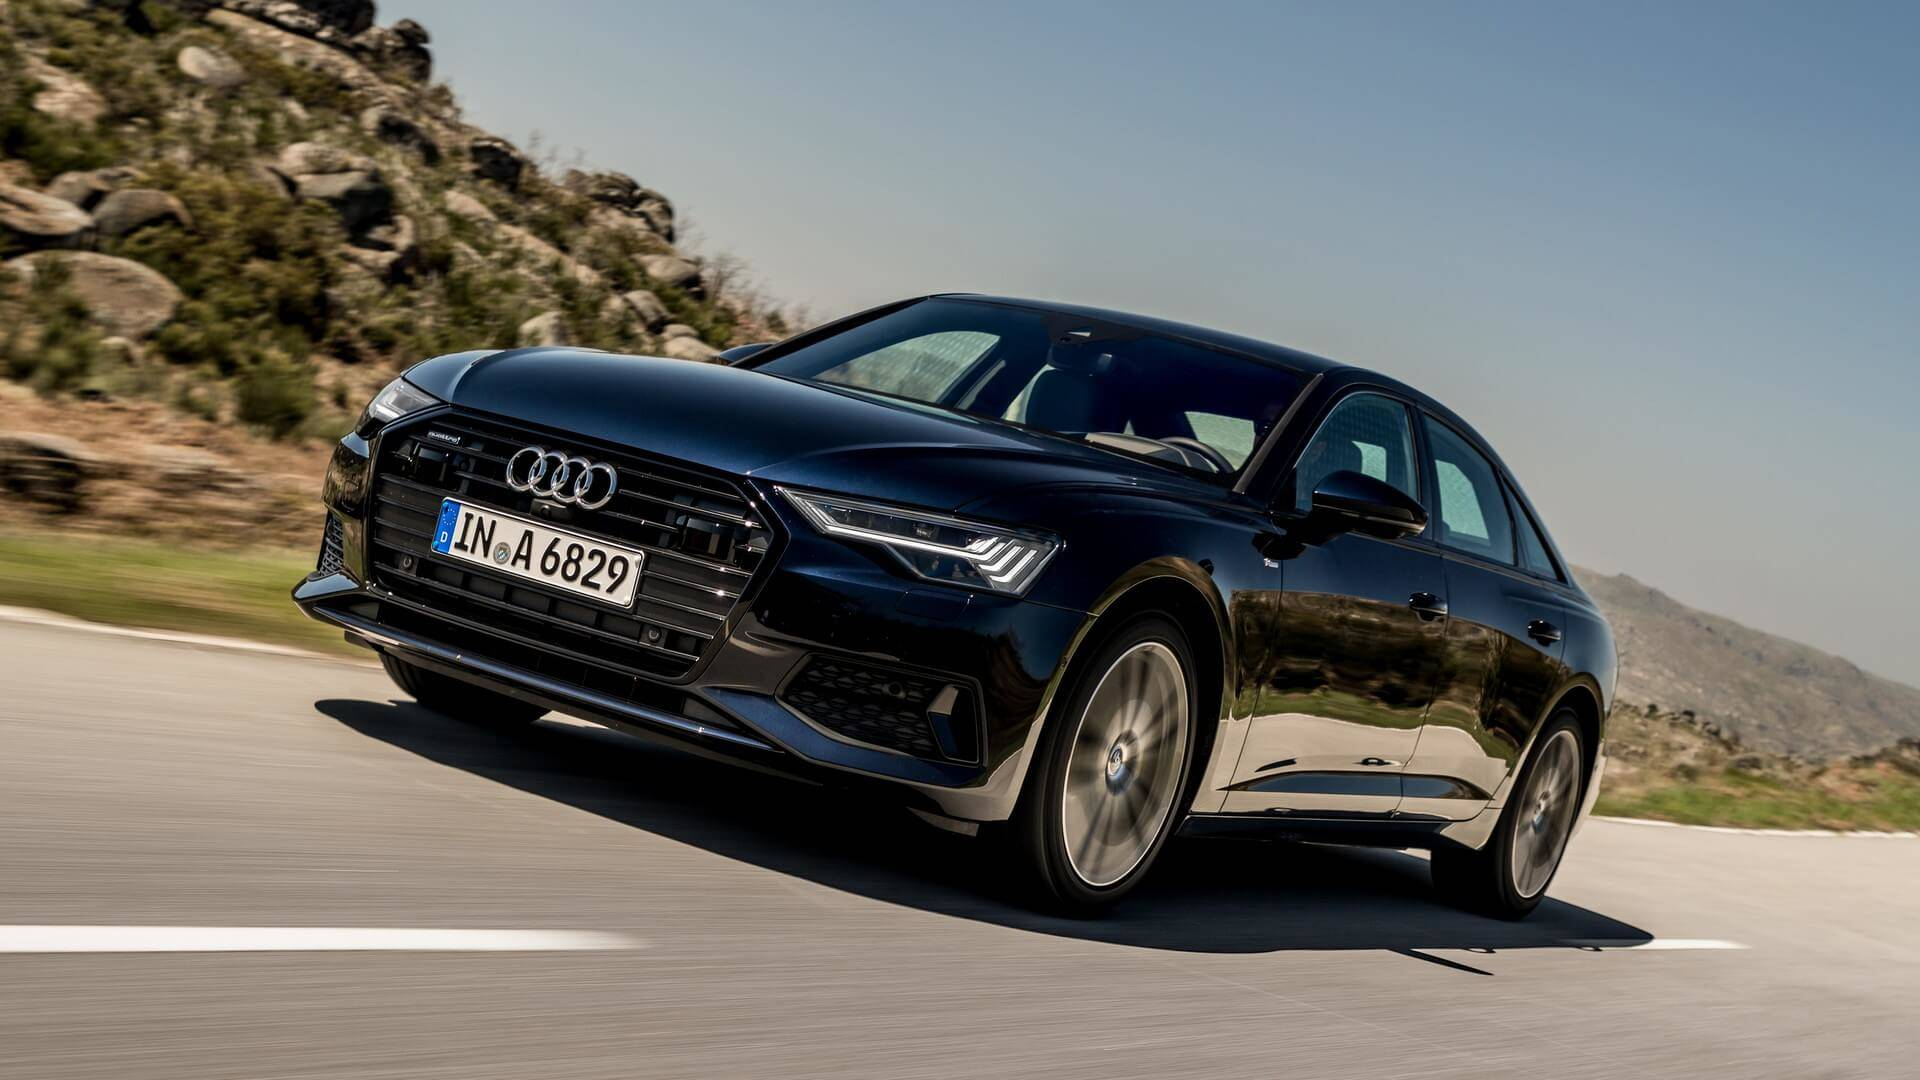 2019 Audi A6 Allroad Rendered Looks Properly Rugged